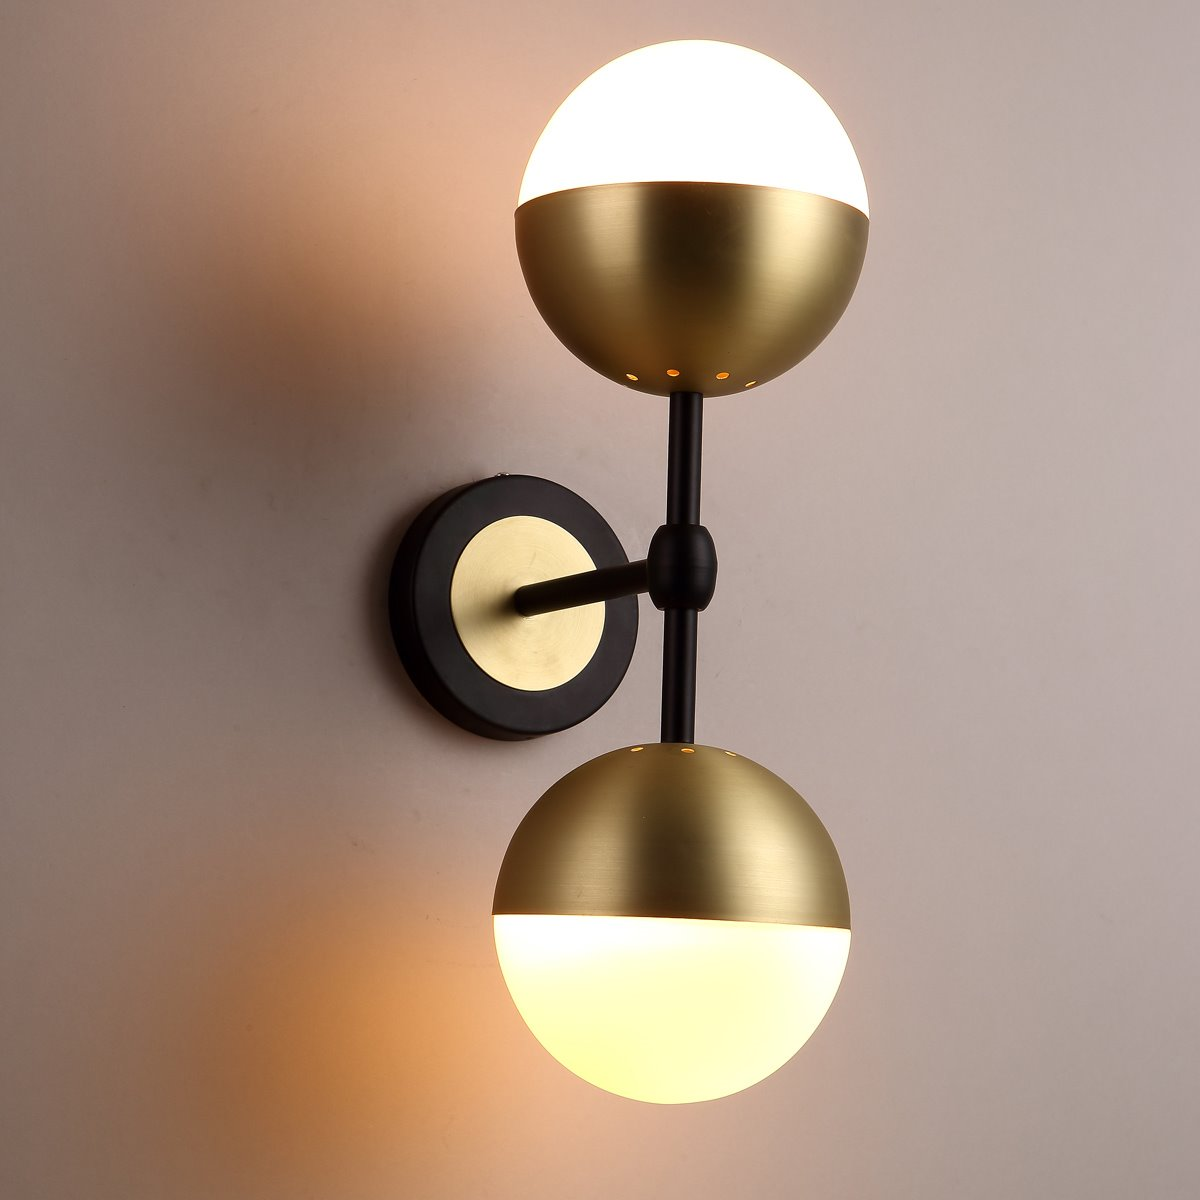 Two Glass Balls with Golden Hardware Wall Light